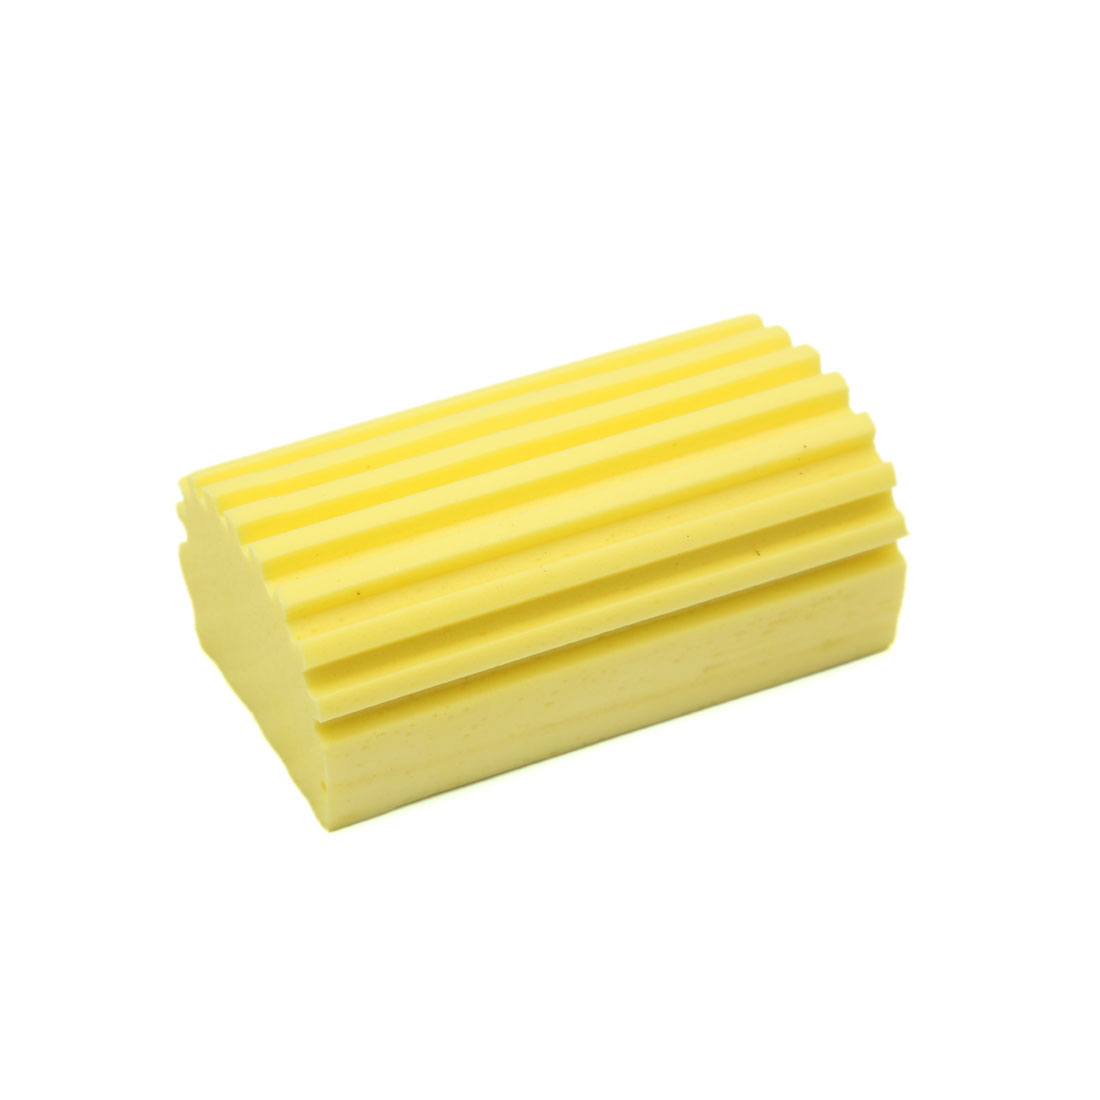 Yellow Strong Absorbent PVA Sponge Foam Multipurpose Cleaner Tool for Auto Car